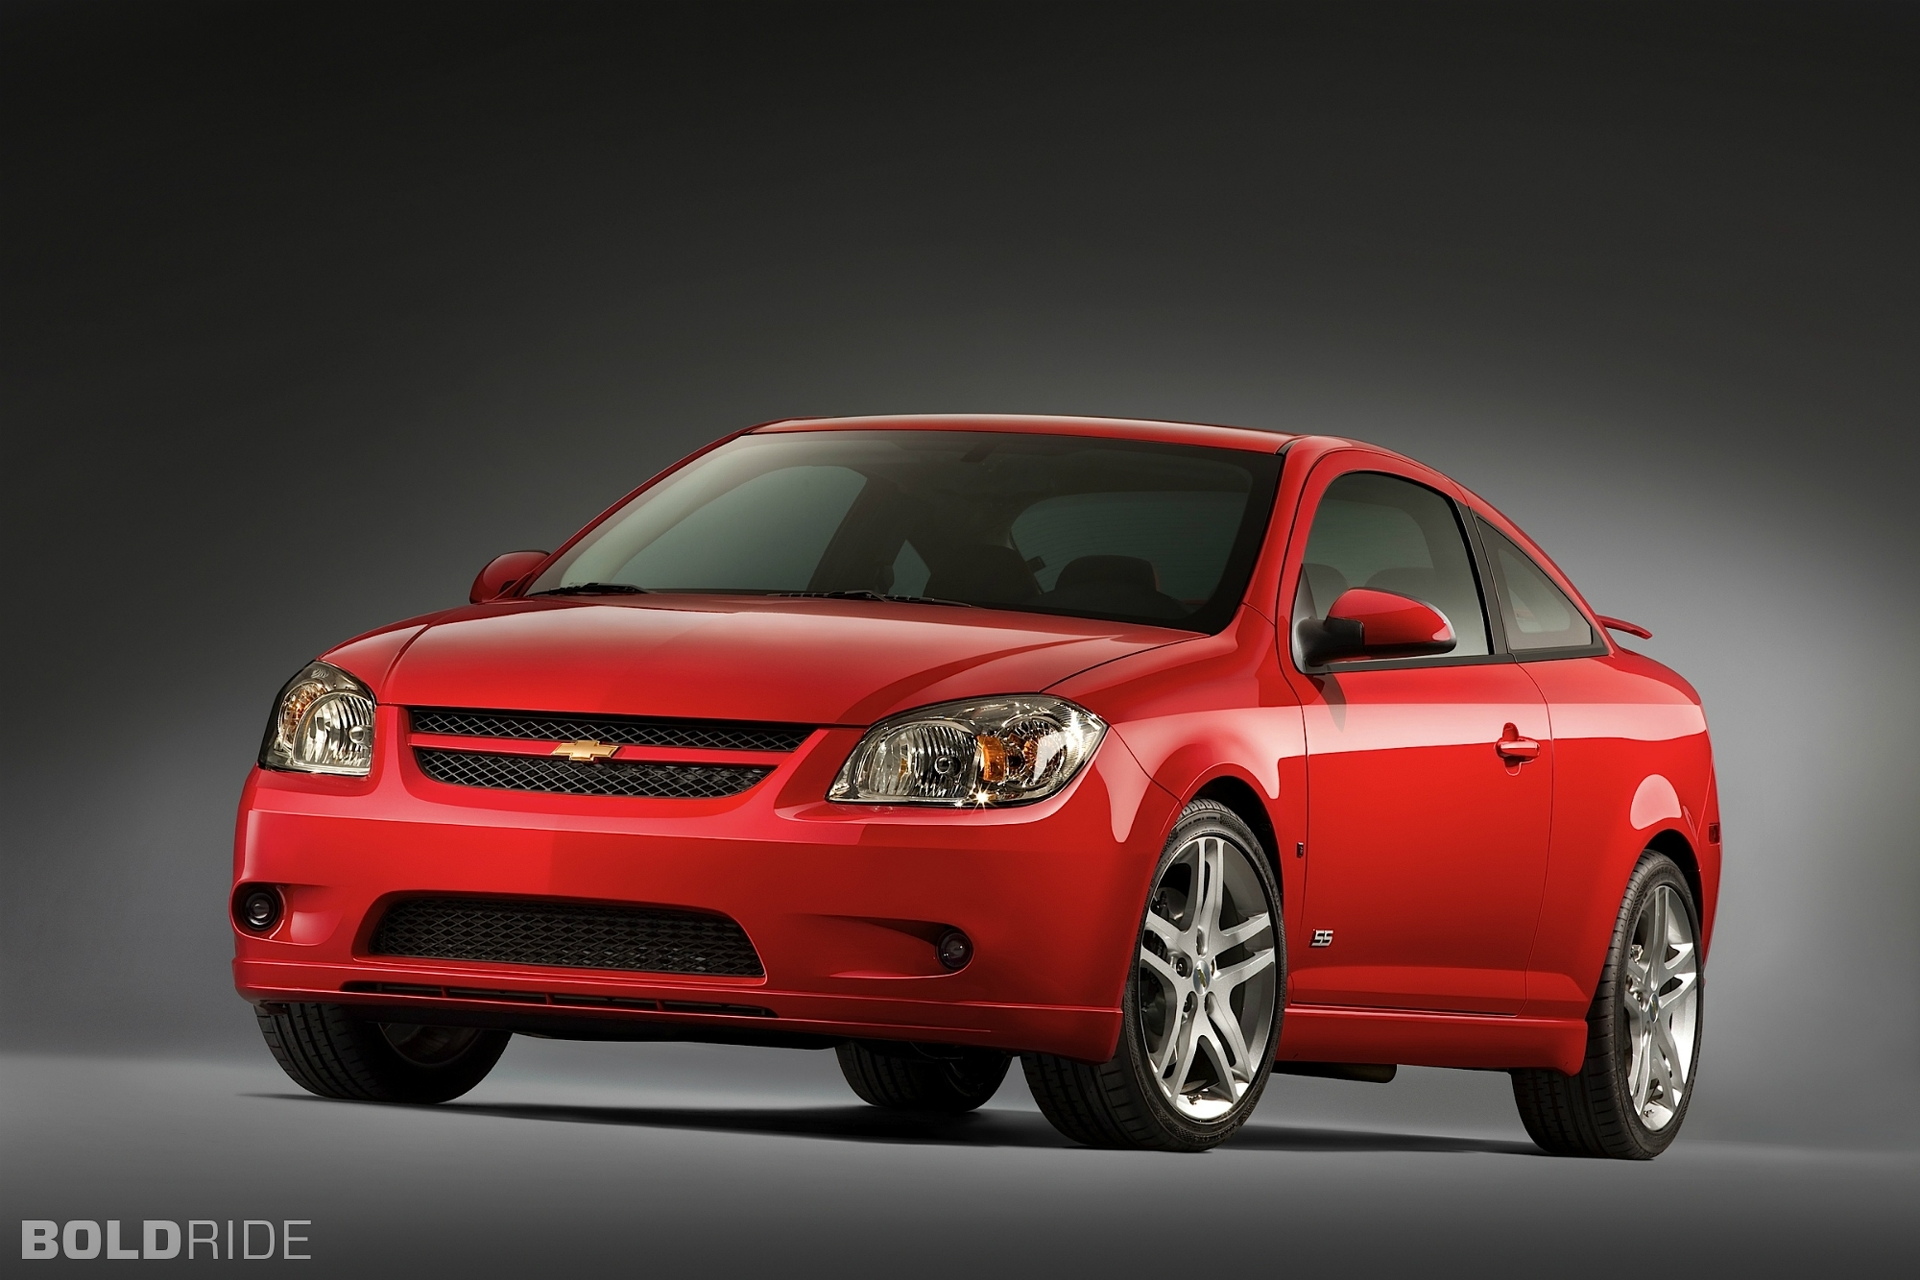 2010 chevrolet cobalt ss autos post. Black Bedroom Furniture Sets. Home Design Ideas